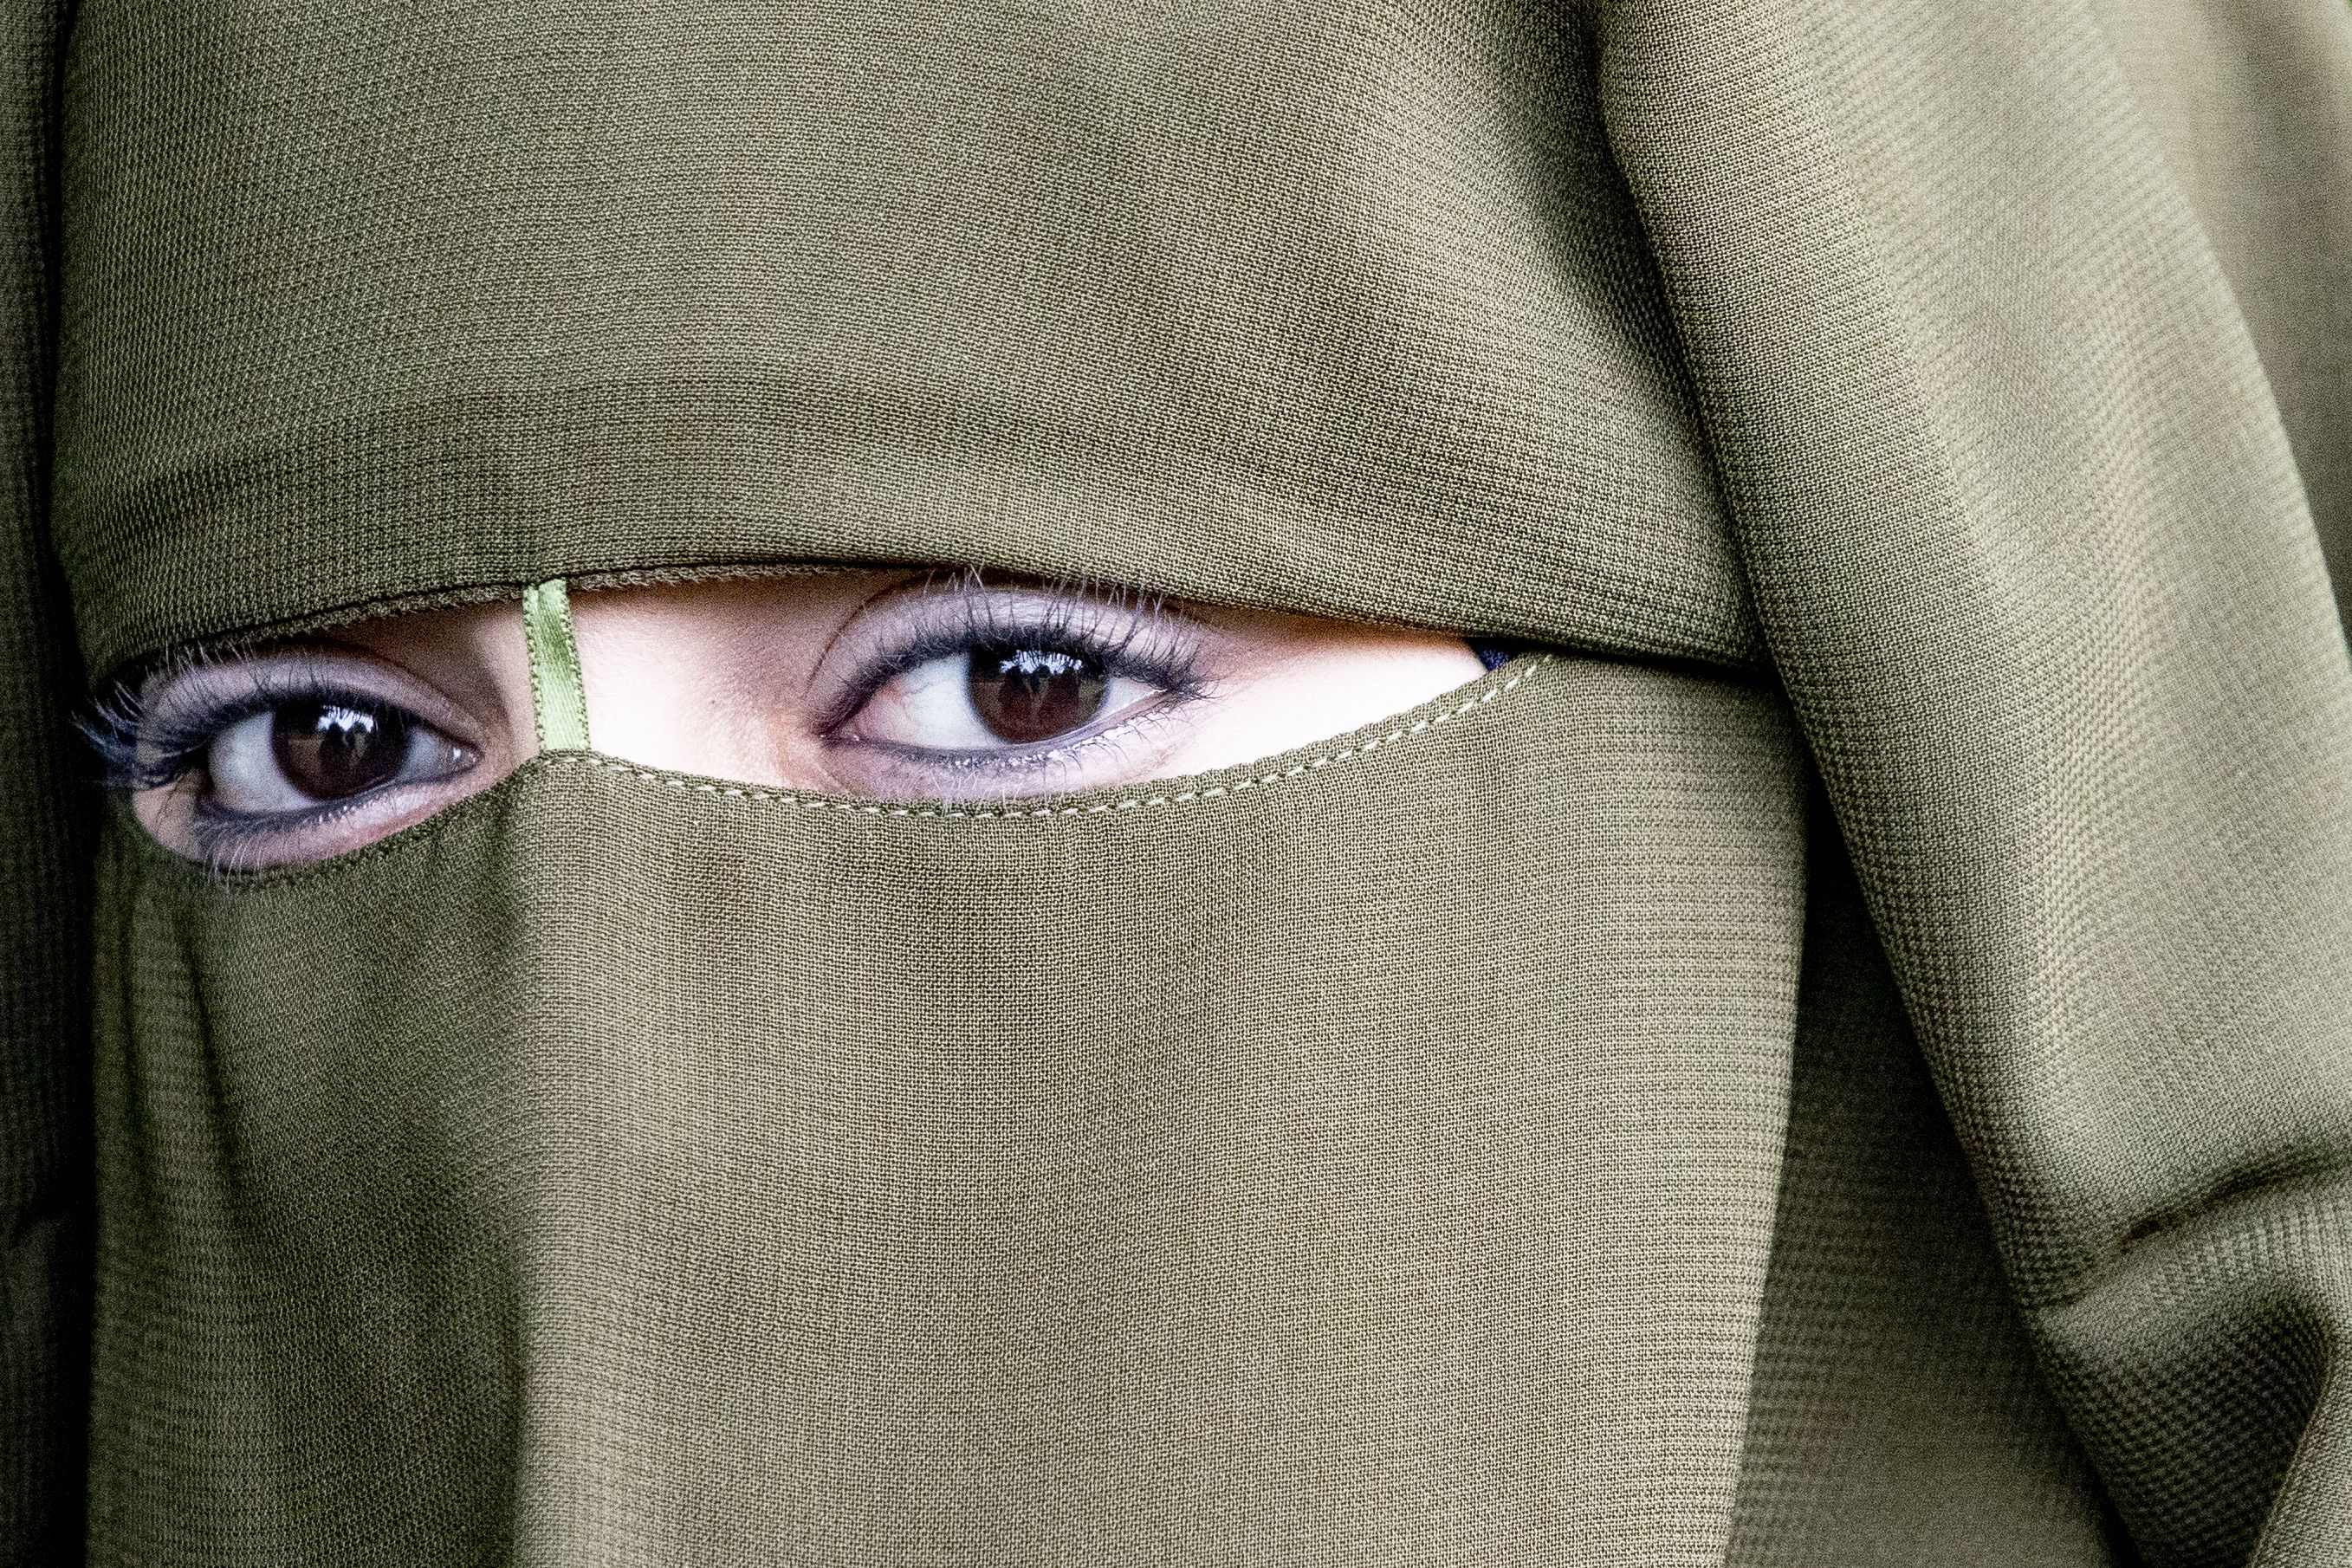 Confused about which islamic headscarf is which? Fact Check Burqas And Niqabs Are Not Comparable To Face Masks